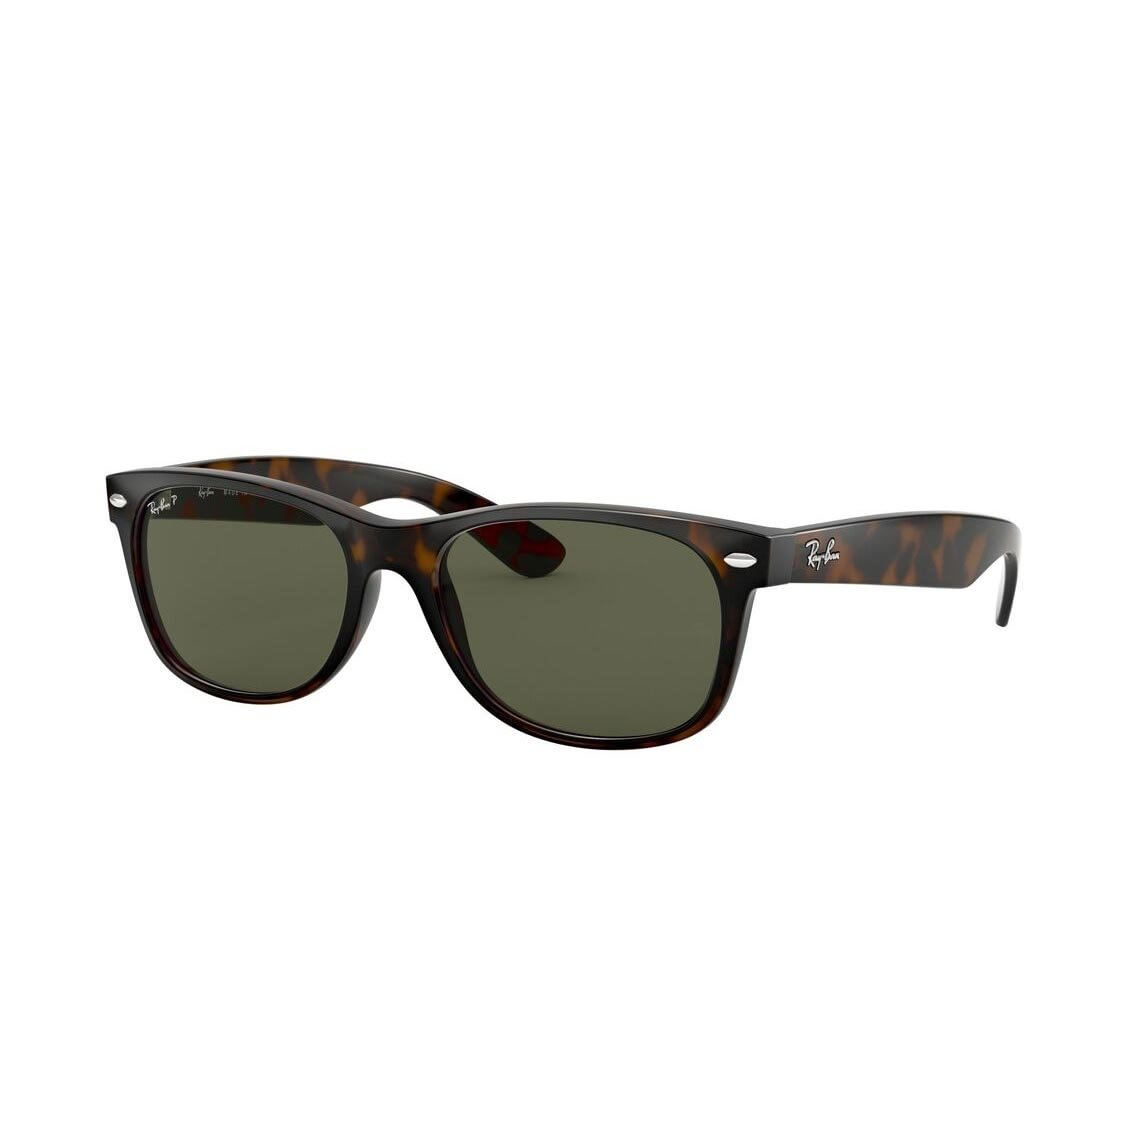 Ray-Ban New Wayfarer RB2132 902/58 52